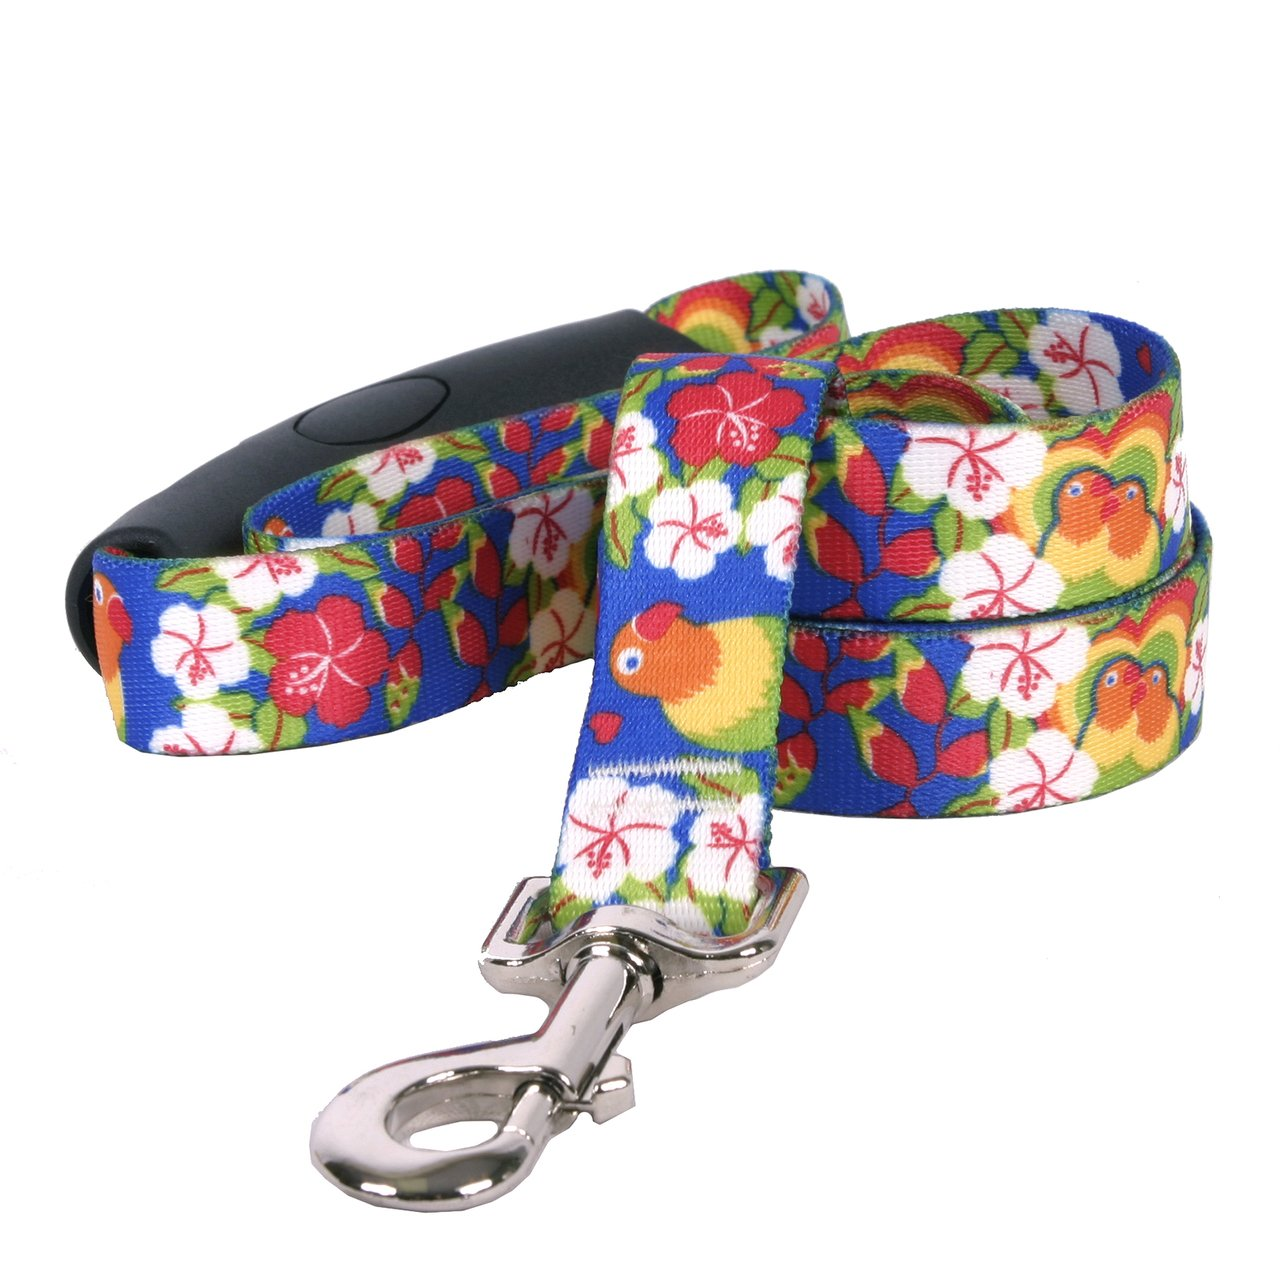 Yellow Dog Design Lovebirds Ez-Grip Dog Leash with Comfort Handle 3/4'' Wide and 5' (60'') Long, Small/Medium